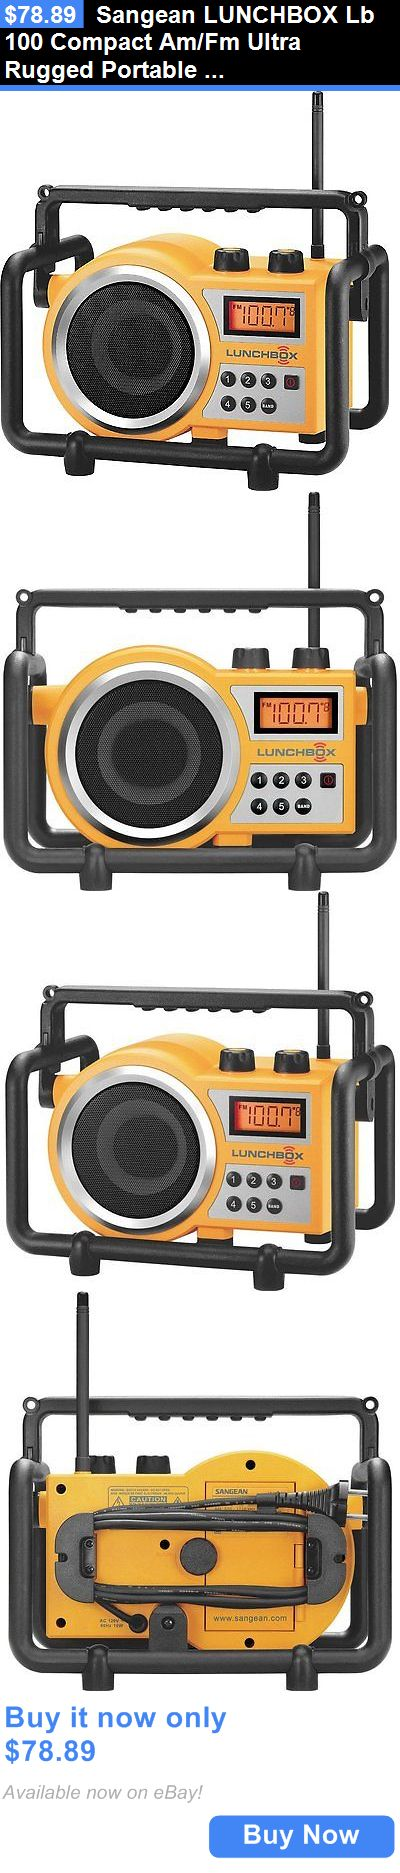 Portable AM FM Radios: Sangean Lunchbox Lb 100 Compact Am/Fm Ultra Rugged Portable Radio Receiver New BUY IT NOW ONLY: $78.89